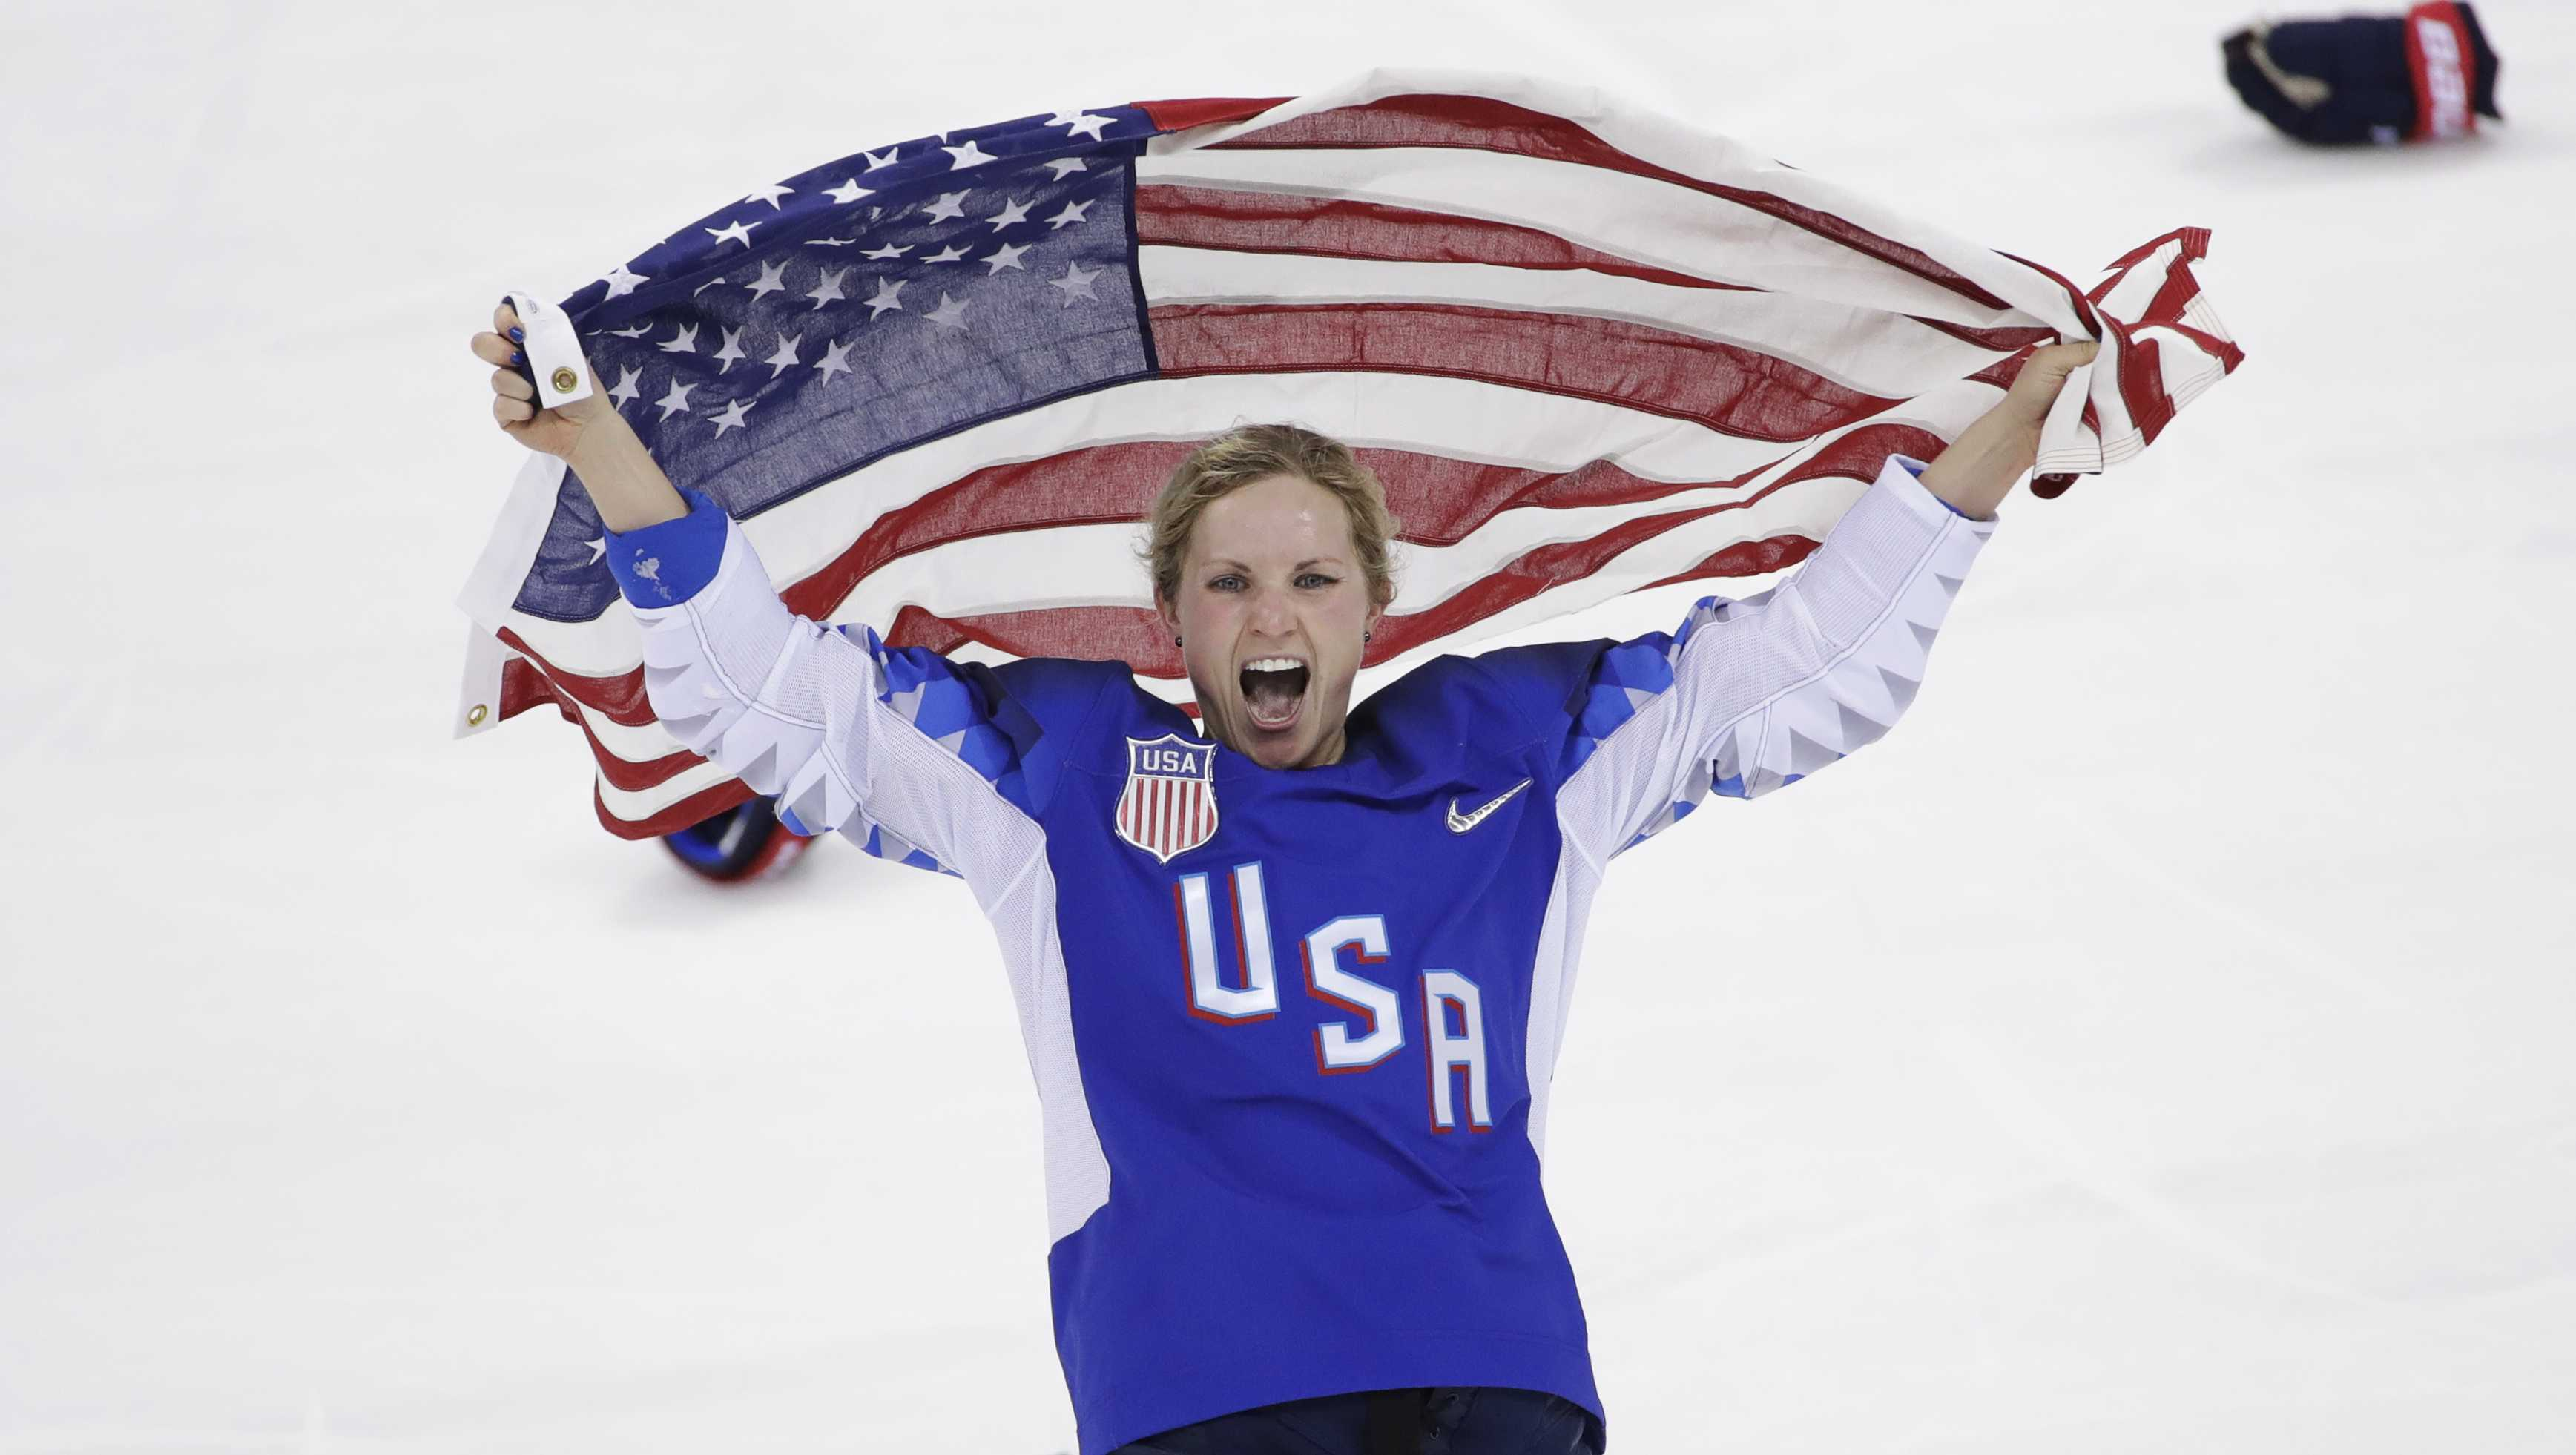 Jocelyne Lamoureux-Davidson (17), of the United States, celebrates after winning against Canada in the women's gold medal hockey game at the 2018 Winter Olympics in Gangneung, South Korea, Thursday, Feb. 22, 2018.